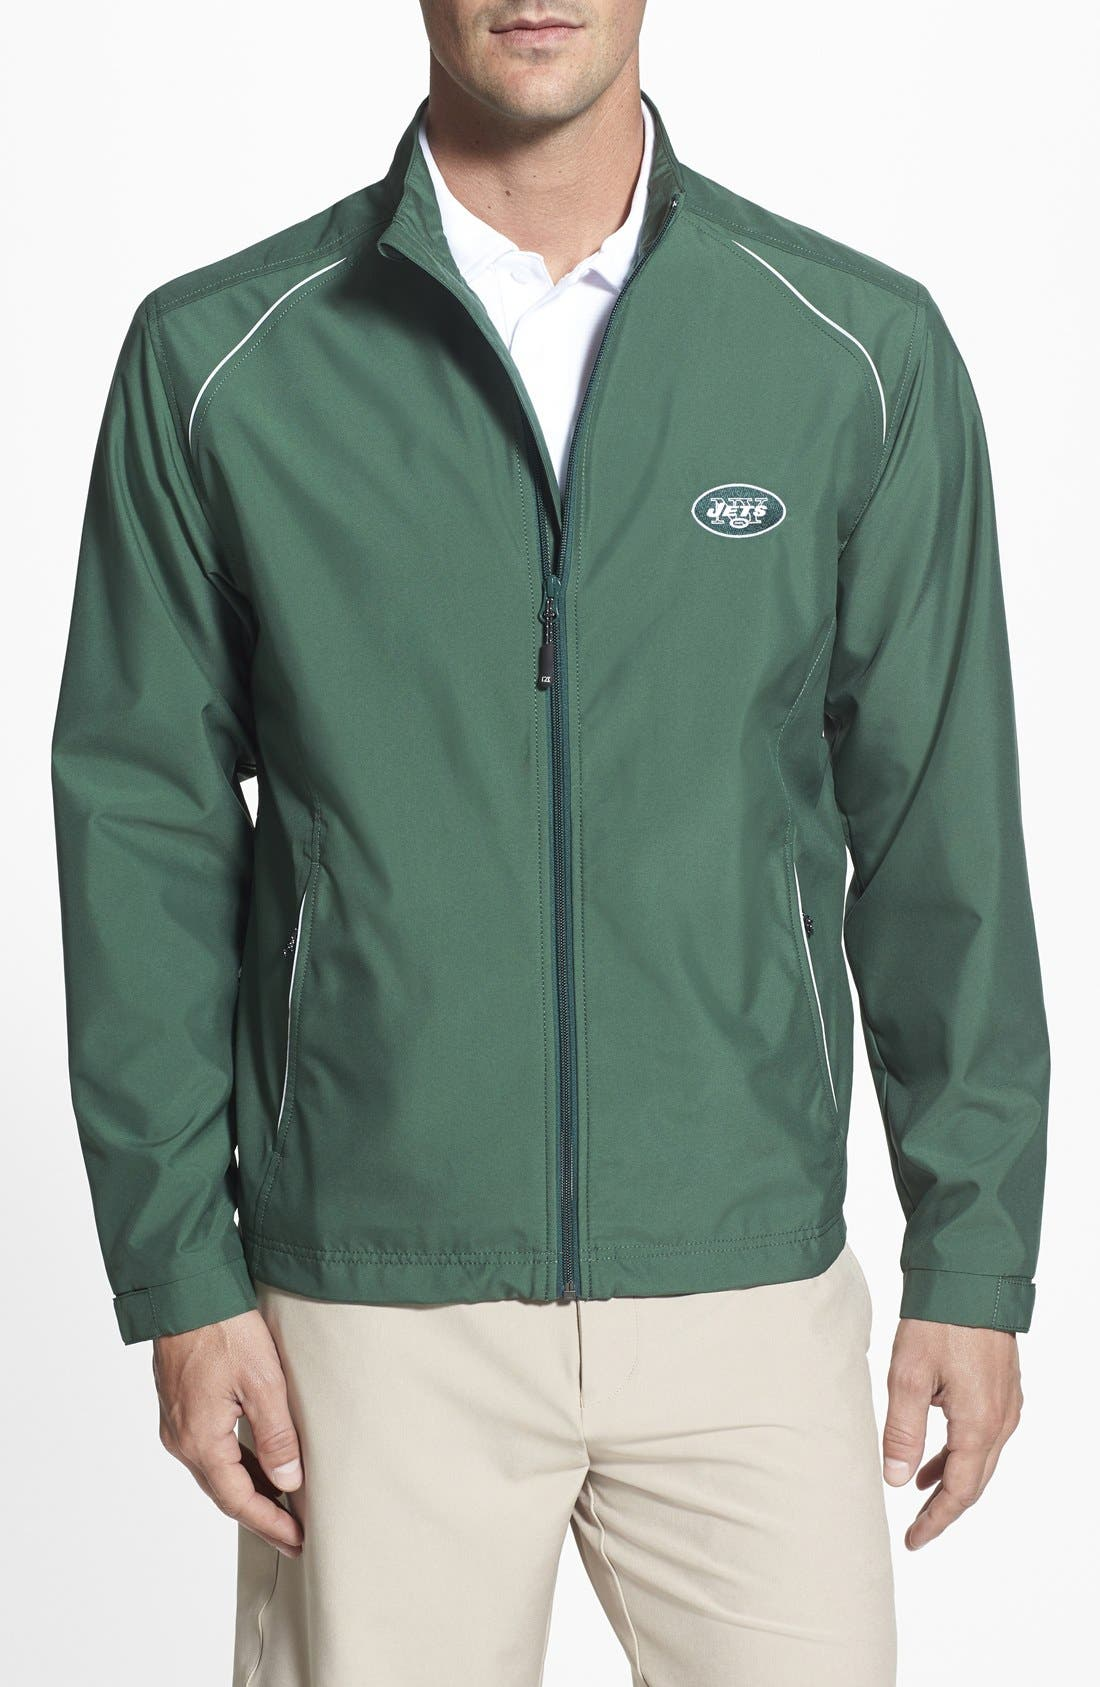 New York Jets - Beacon WeatherTec Wind & Water Resistant Jacket,                         Main,                         color, 377